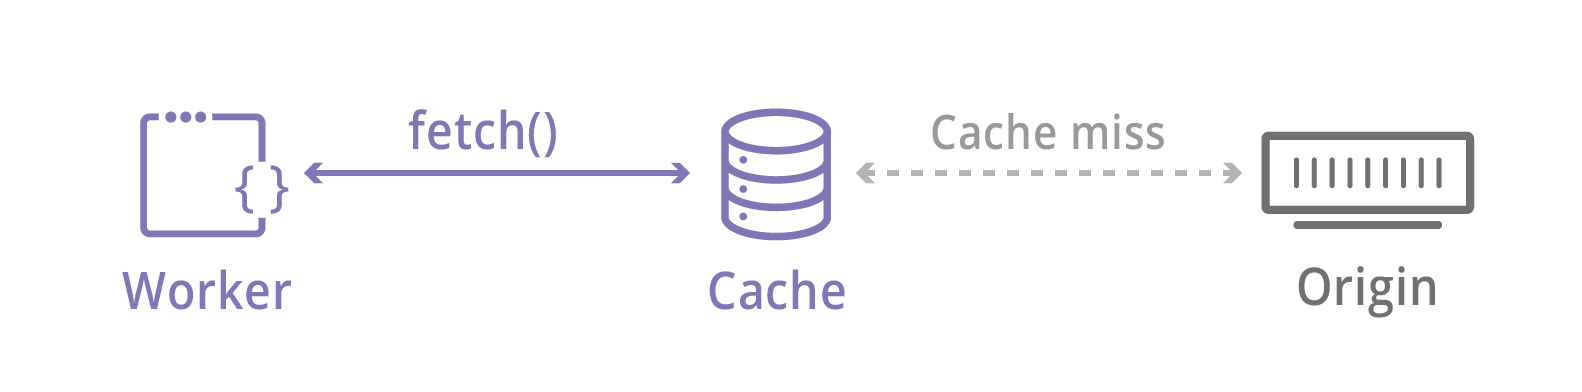 Introducing the Workers Cache API: Giving you control over